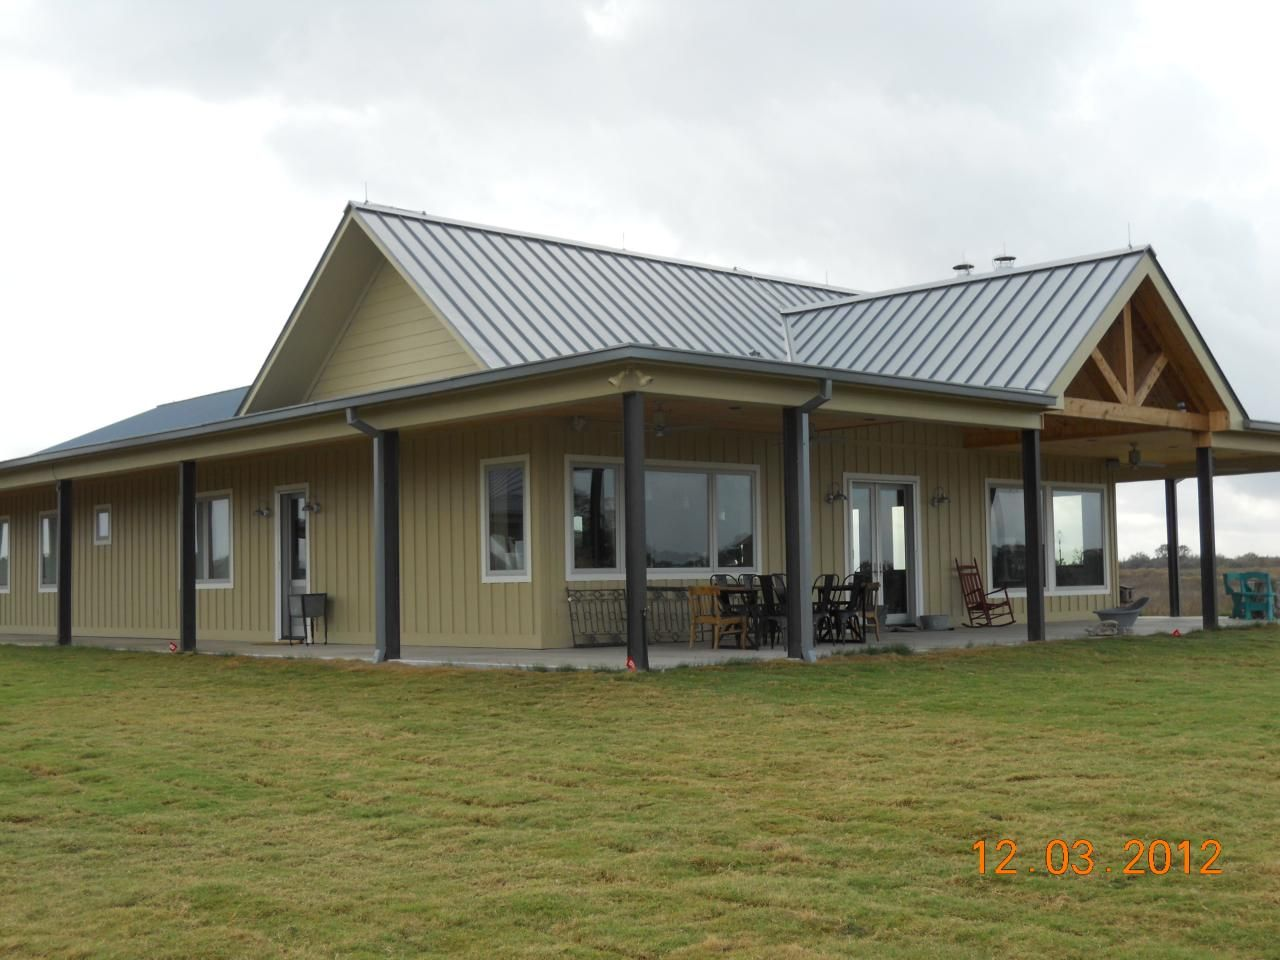 Texas barndominium house plans picture gallery custom Metal barn homes plans